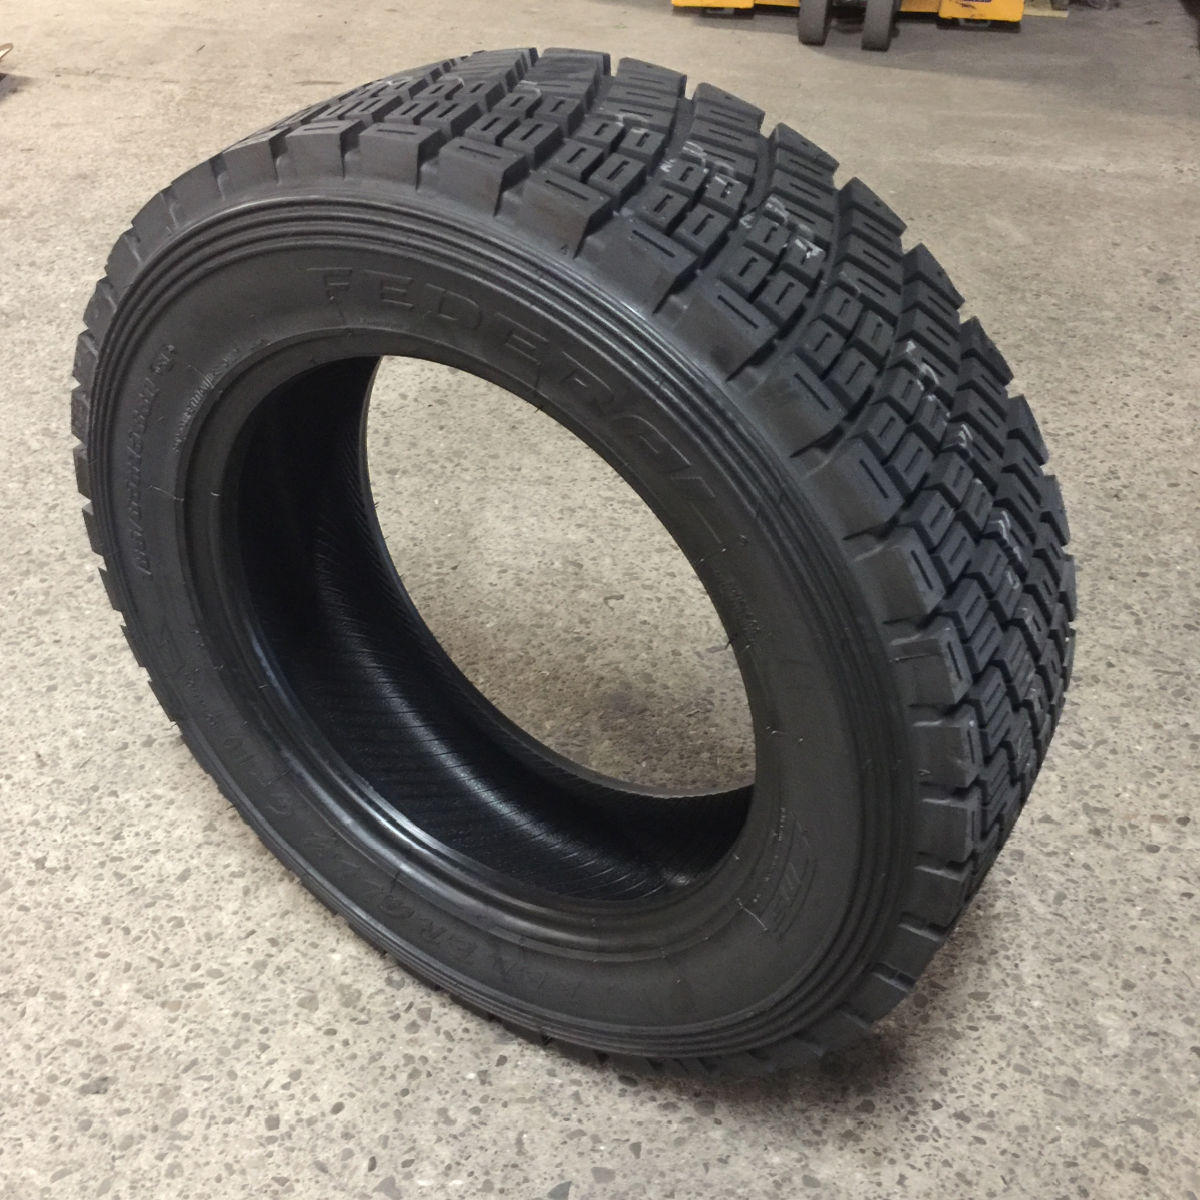 Current Specials on Tires